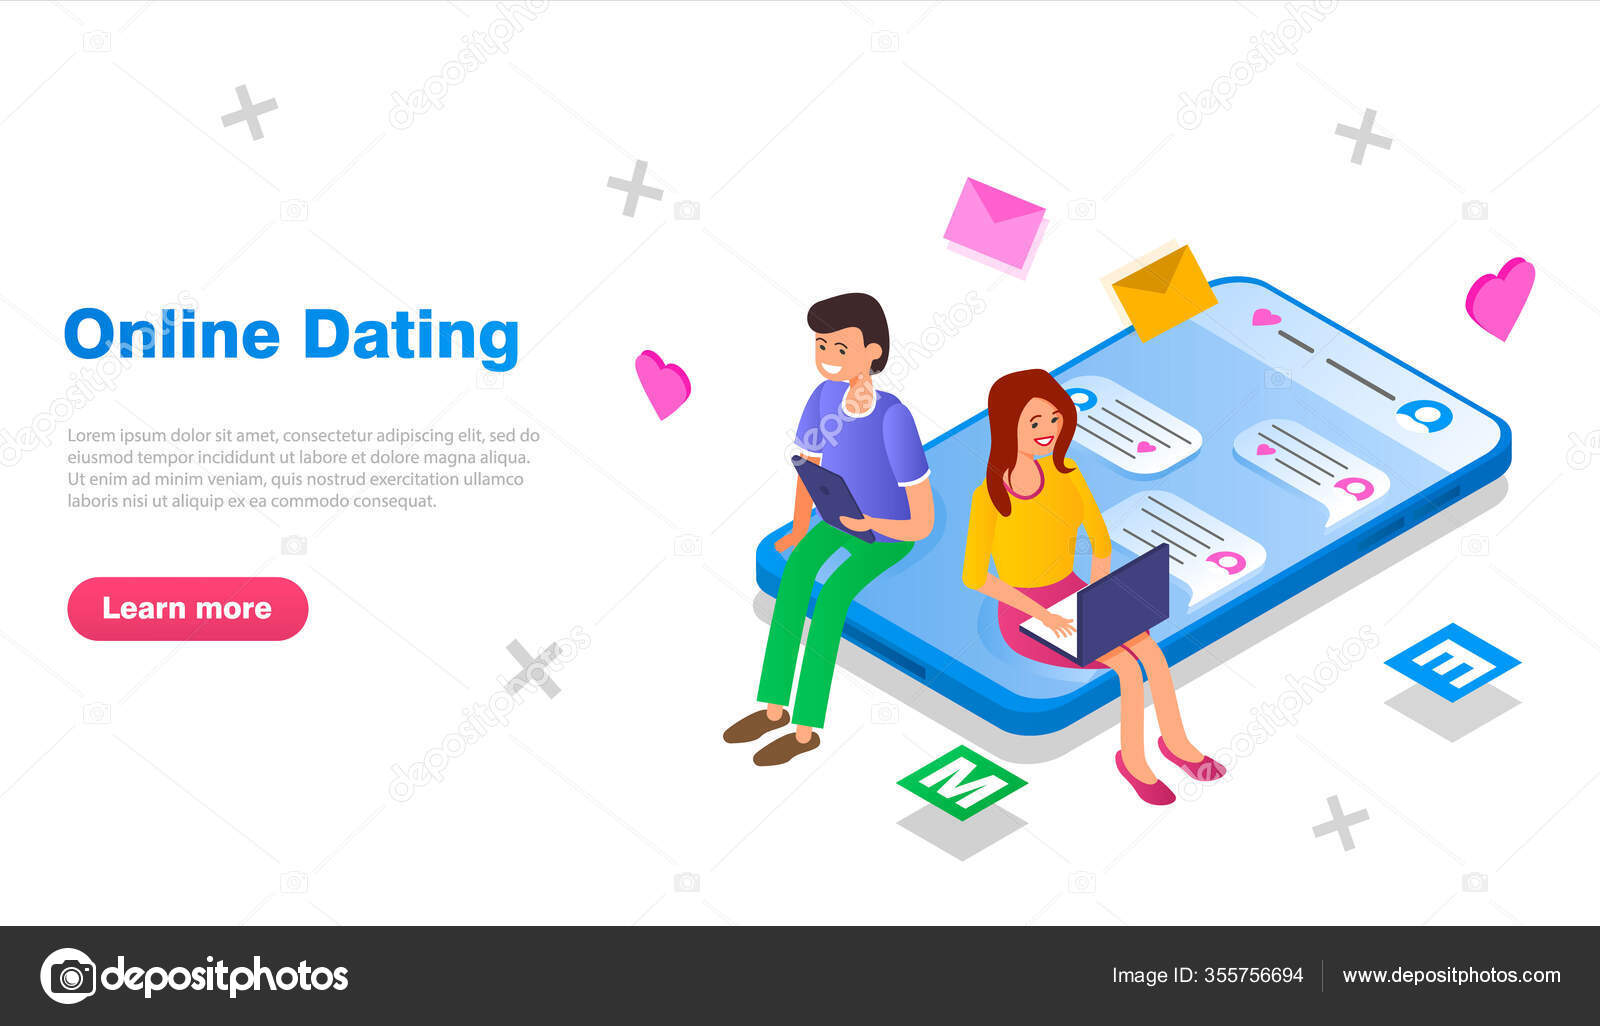 How Online Dating Changes Lives